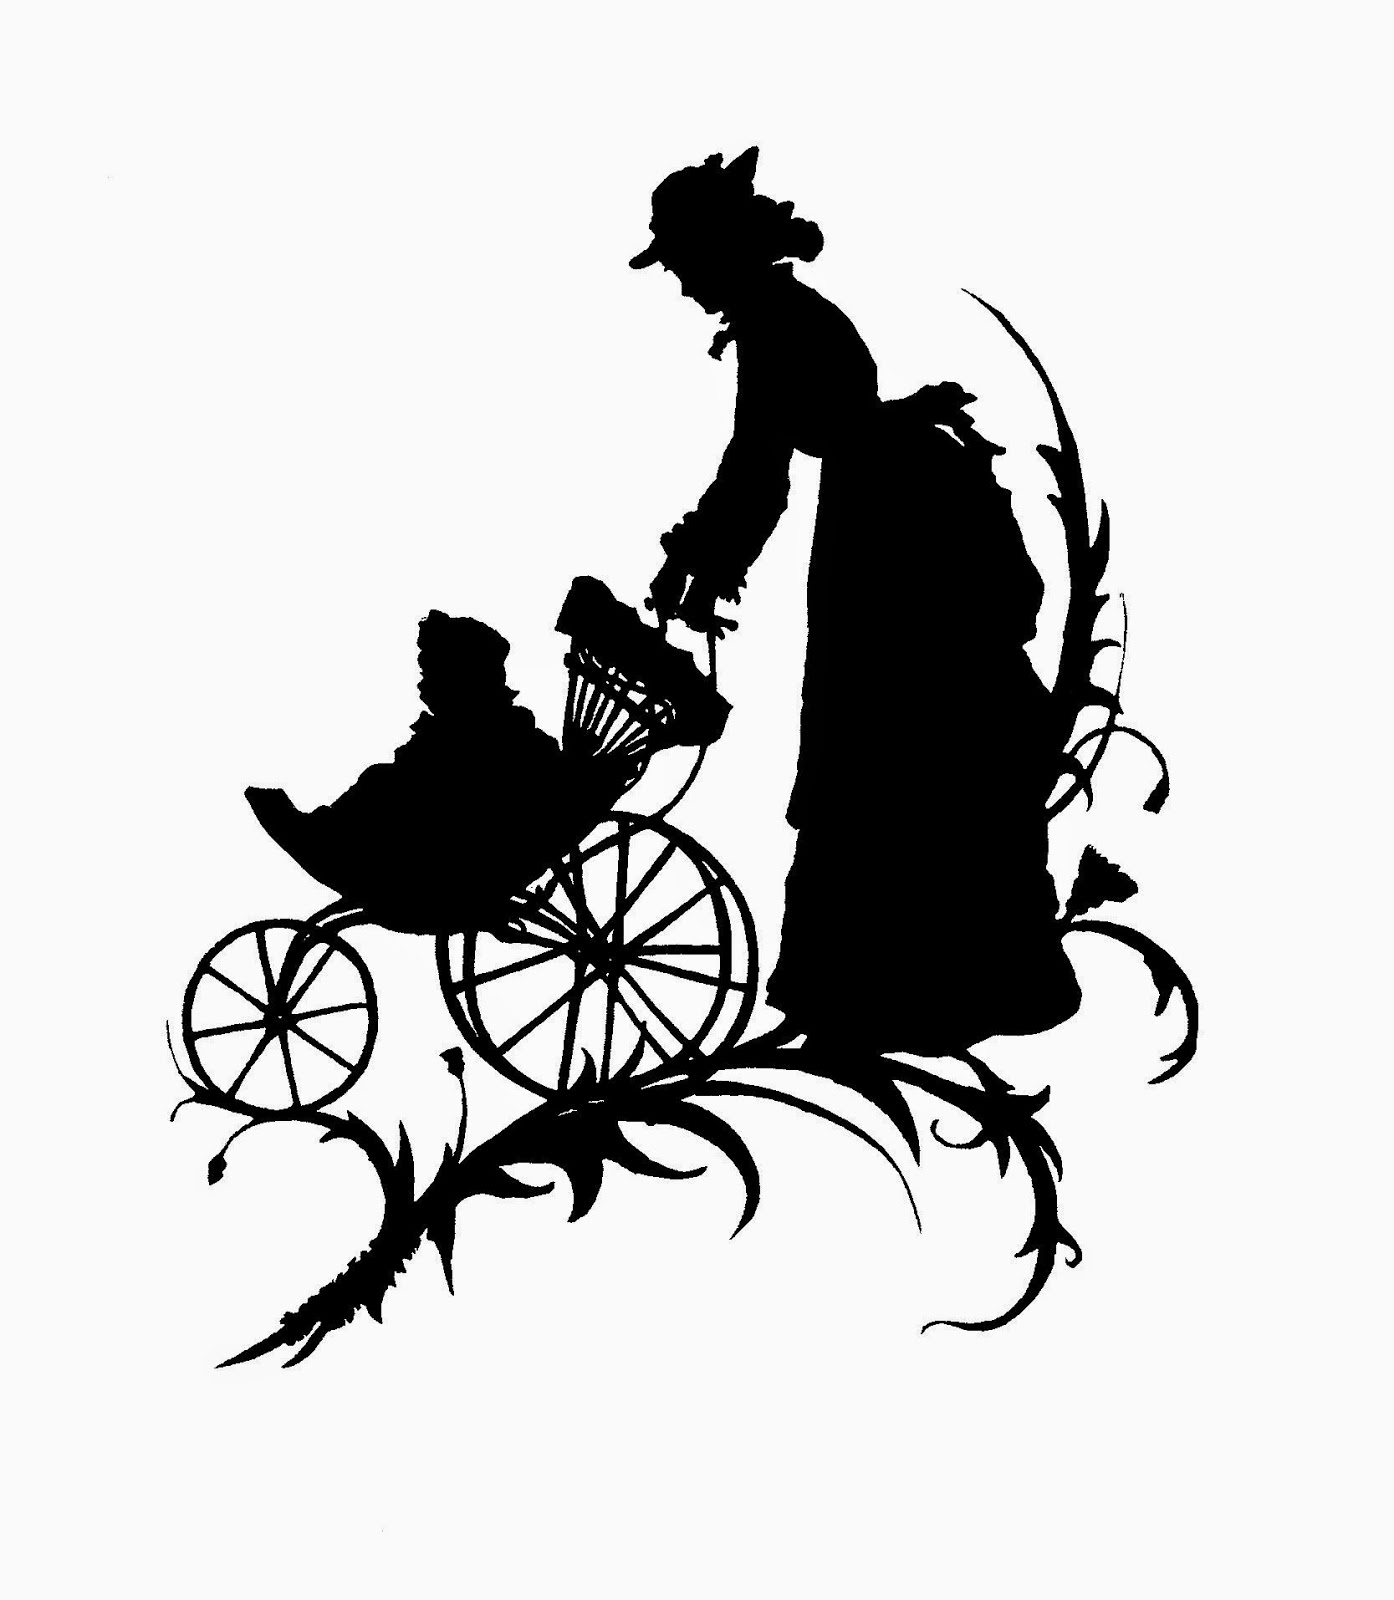 Digital Stamp Design Free Mother S Day Digital Stamp Silhouette Of Mother Pushing Baby In Carriage